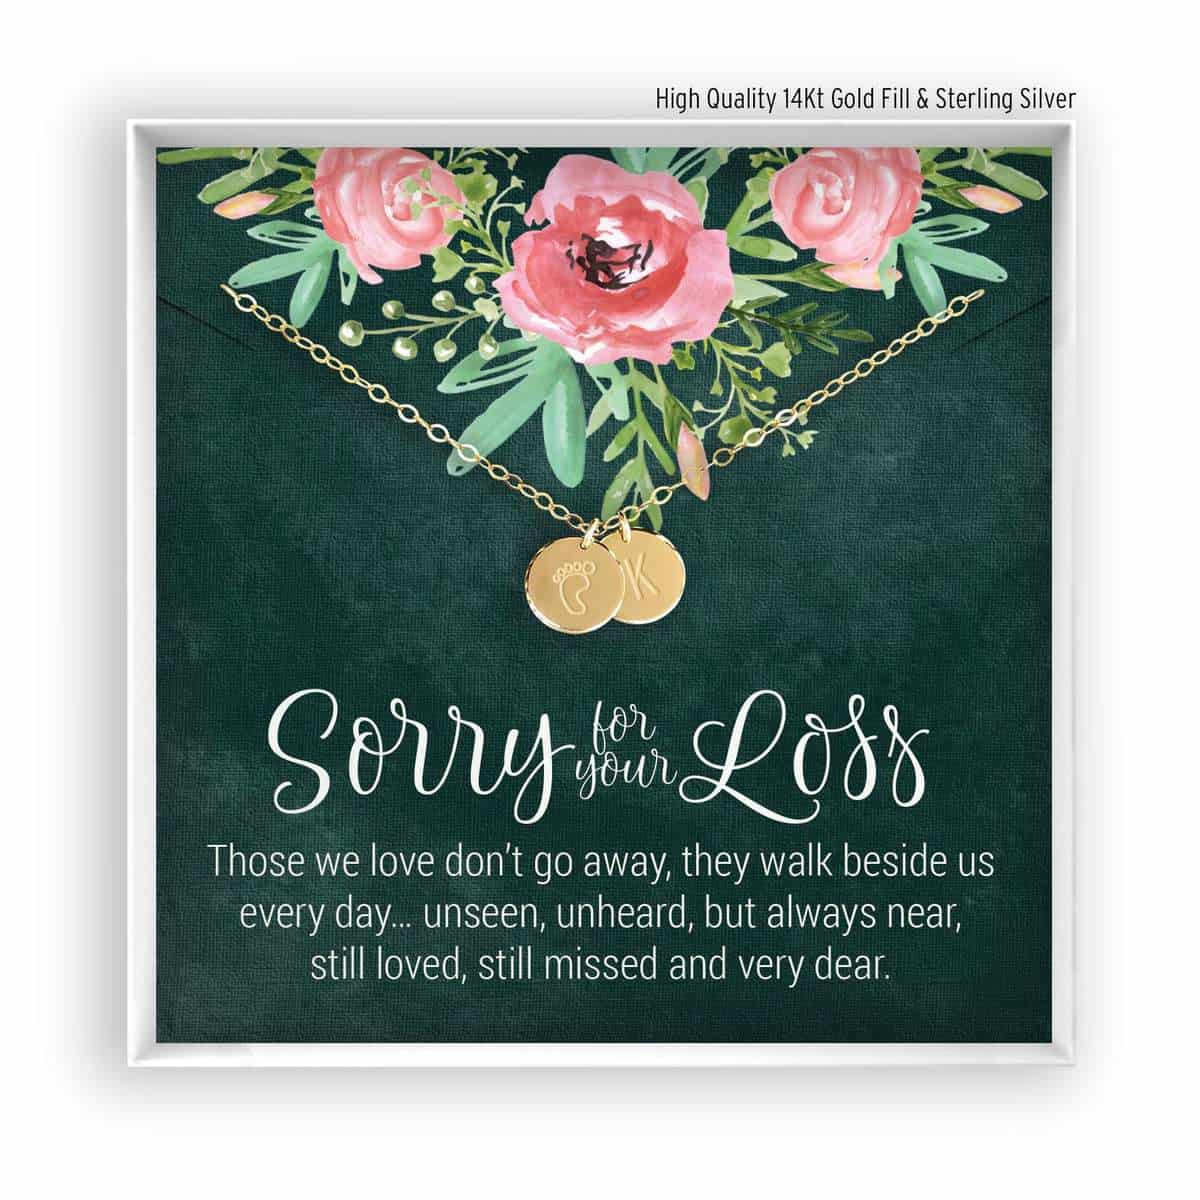 photom of miscarriage necklace on card that says sorry for your loss